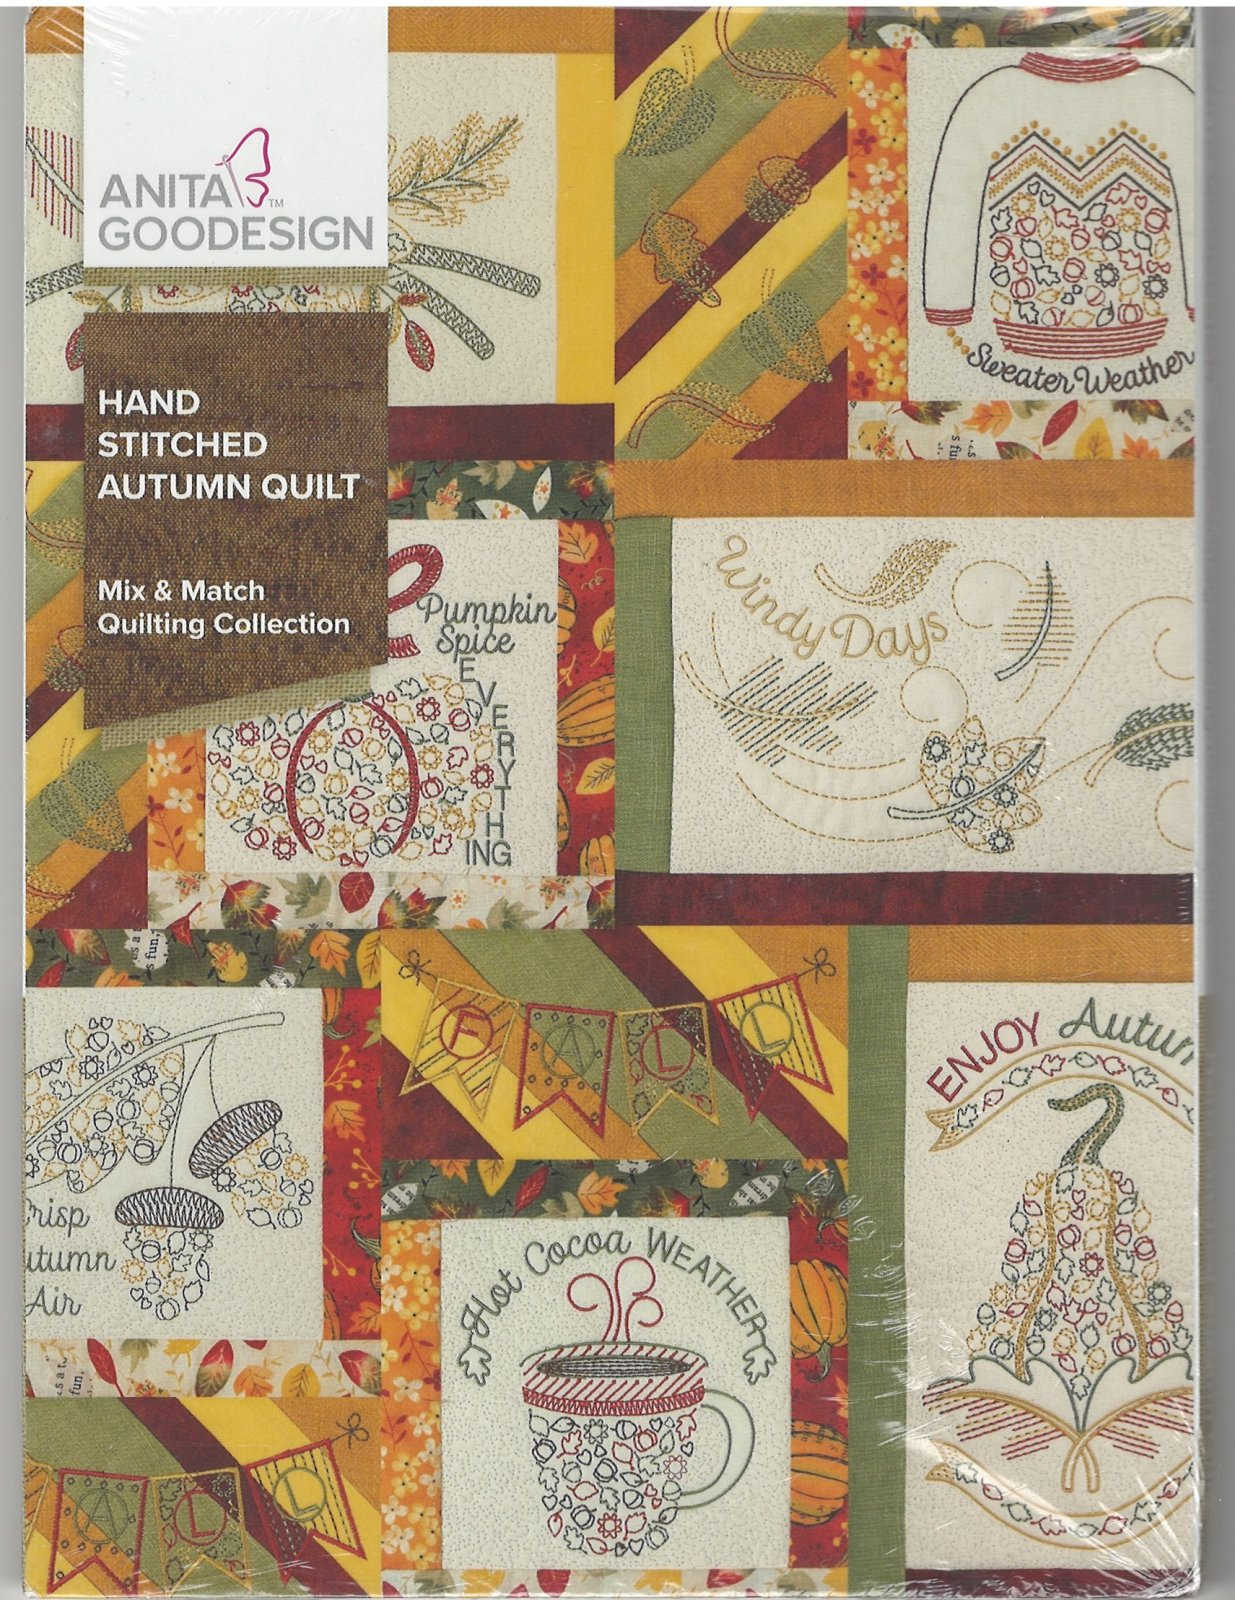 Anita Goodesign Machine Embroidery Designs Hand Stitched Autumn Quilt Full Collection CD